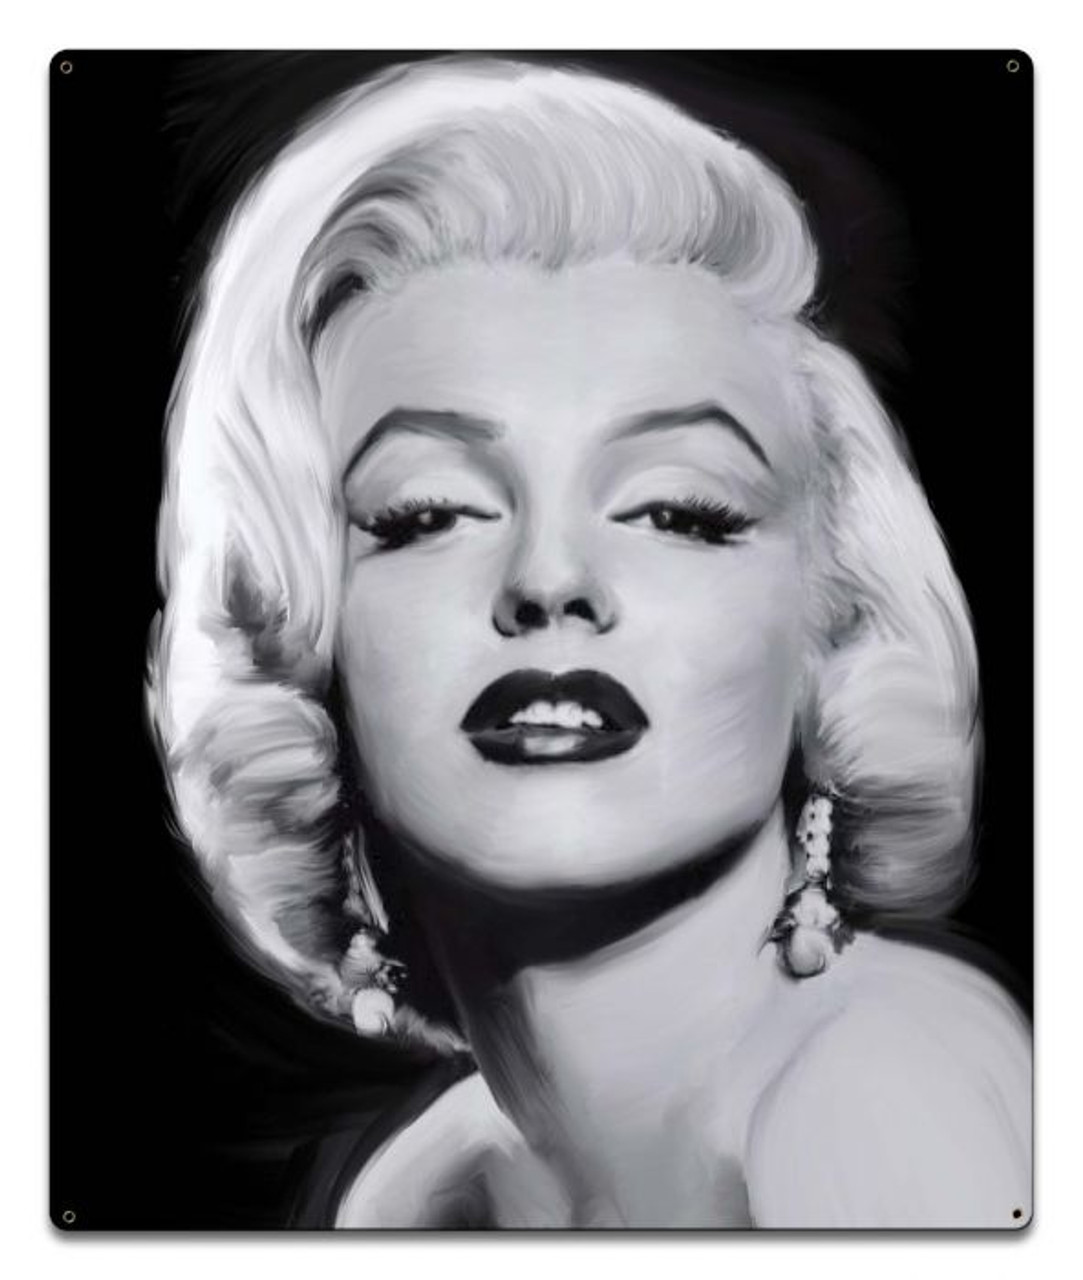 Come To Me Marilyn Monroe Metal Sign 30 x 36 Inches